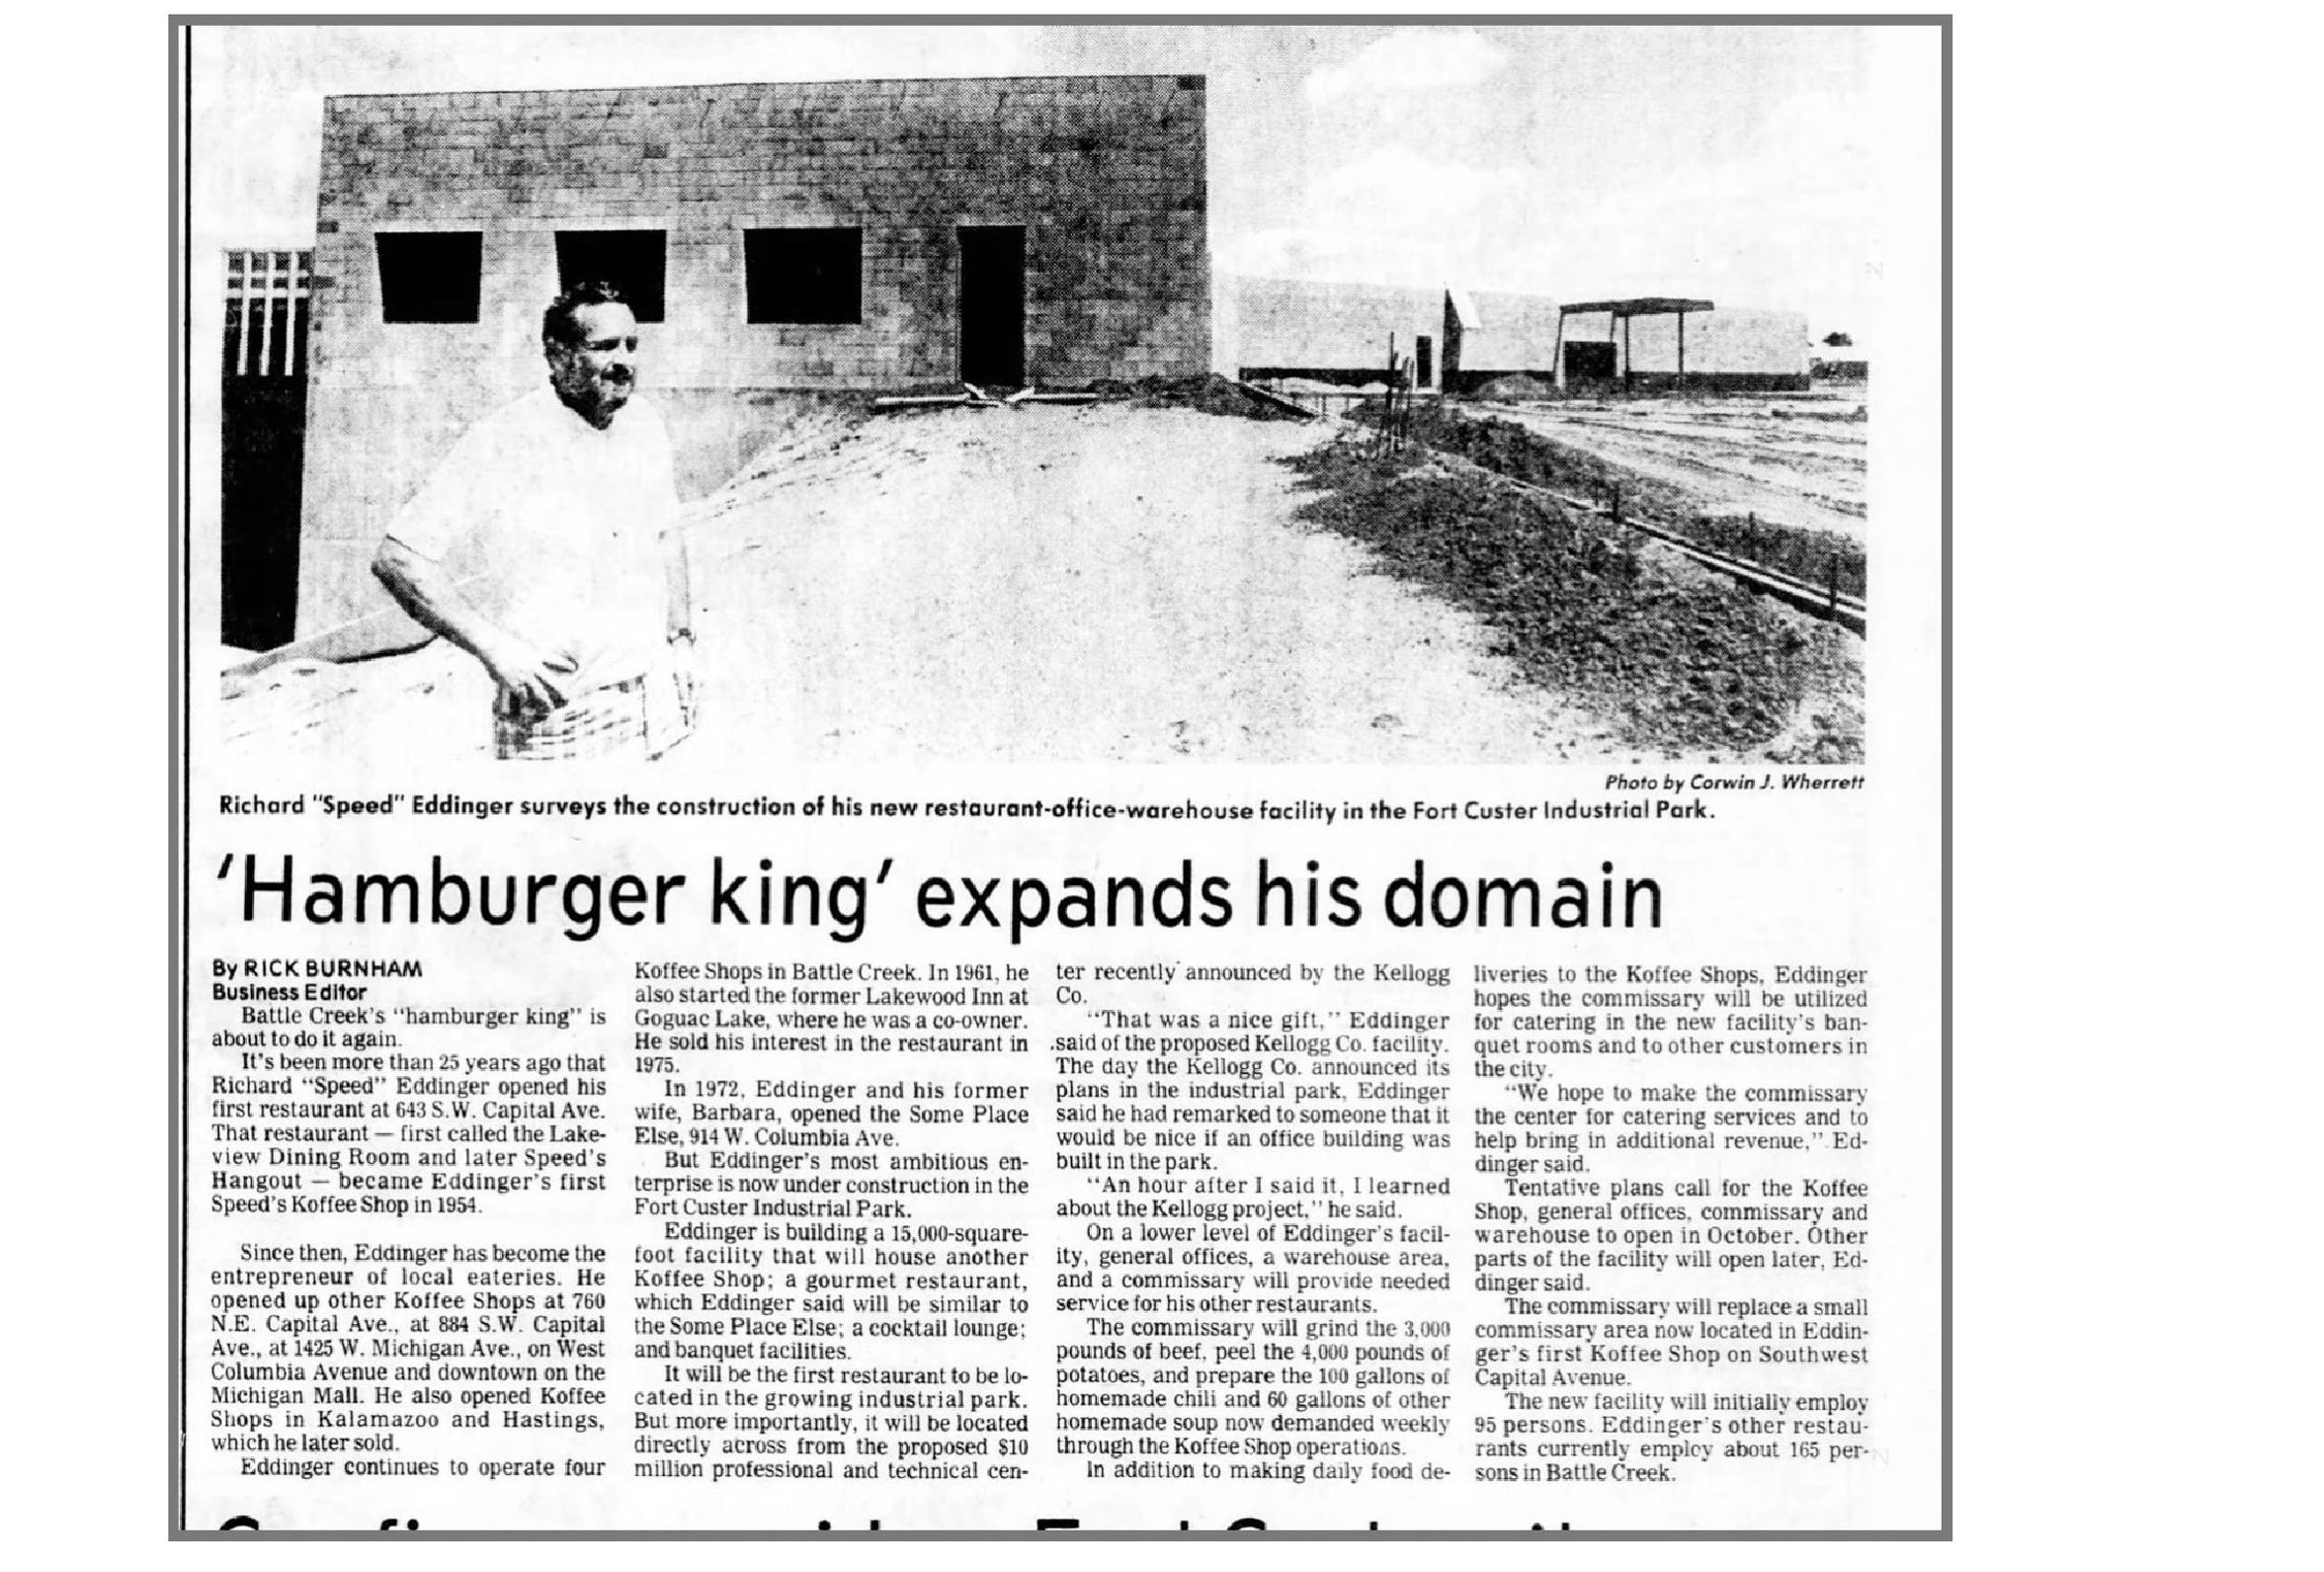 An article in the July 20, 1980 edition of the Battle Creek Enquirer on further expansion by Speed's Inc.